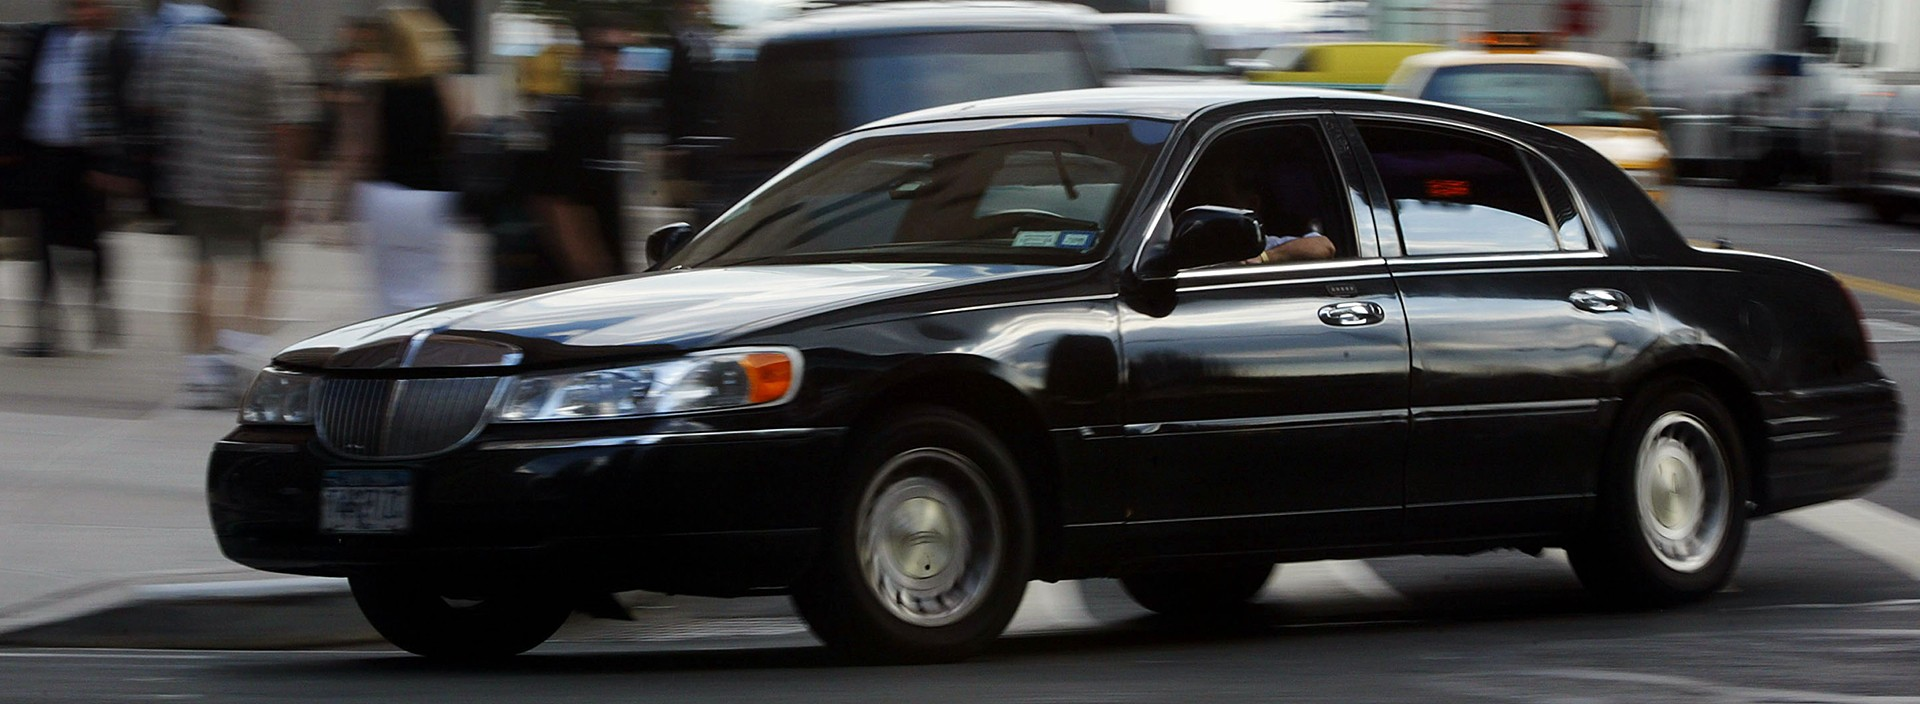 town-car-oc-car-service-best-lax-airport-services-new-rate